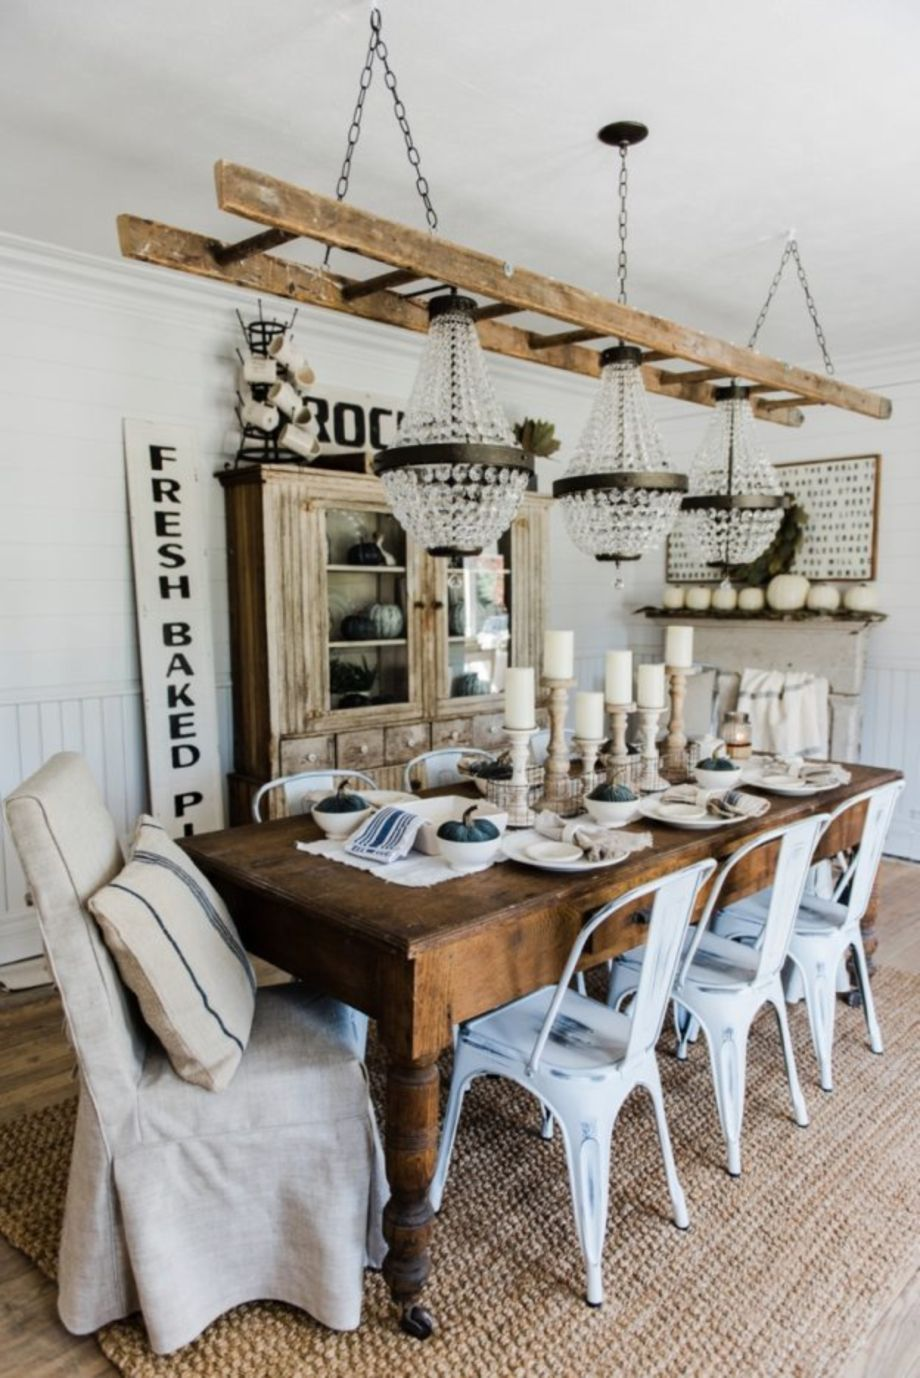 Gorgeous 100 Stunning DIY Rustic Farmhouse Table Ideas  Https://cooarchitecture.com/. Farmhouse Dining Room ...